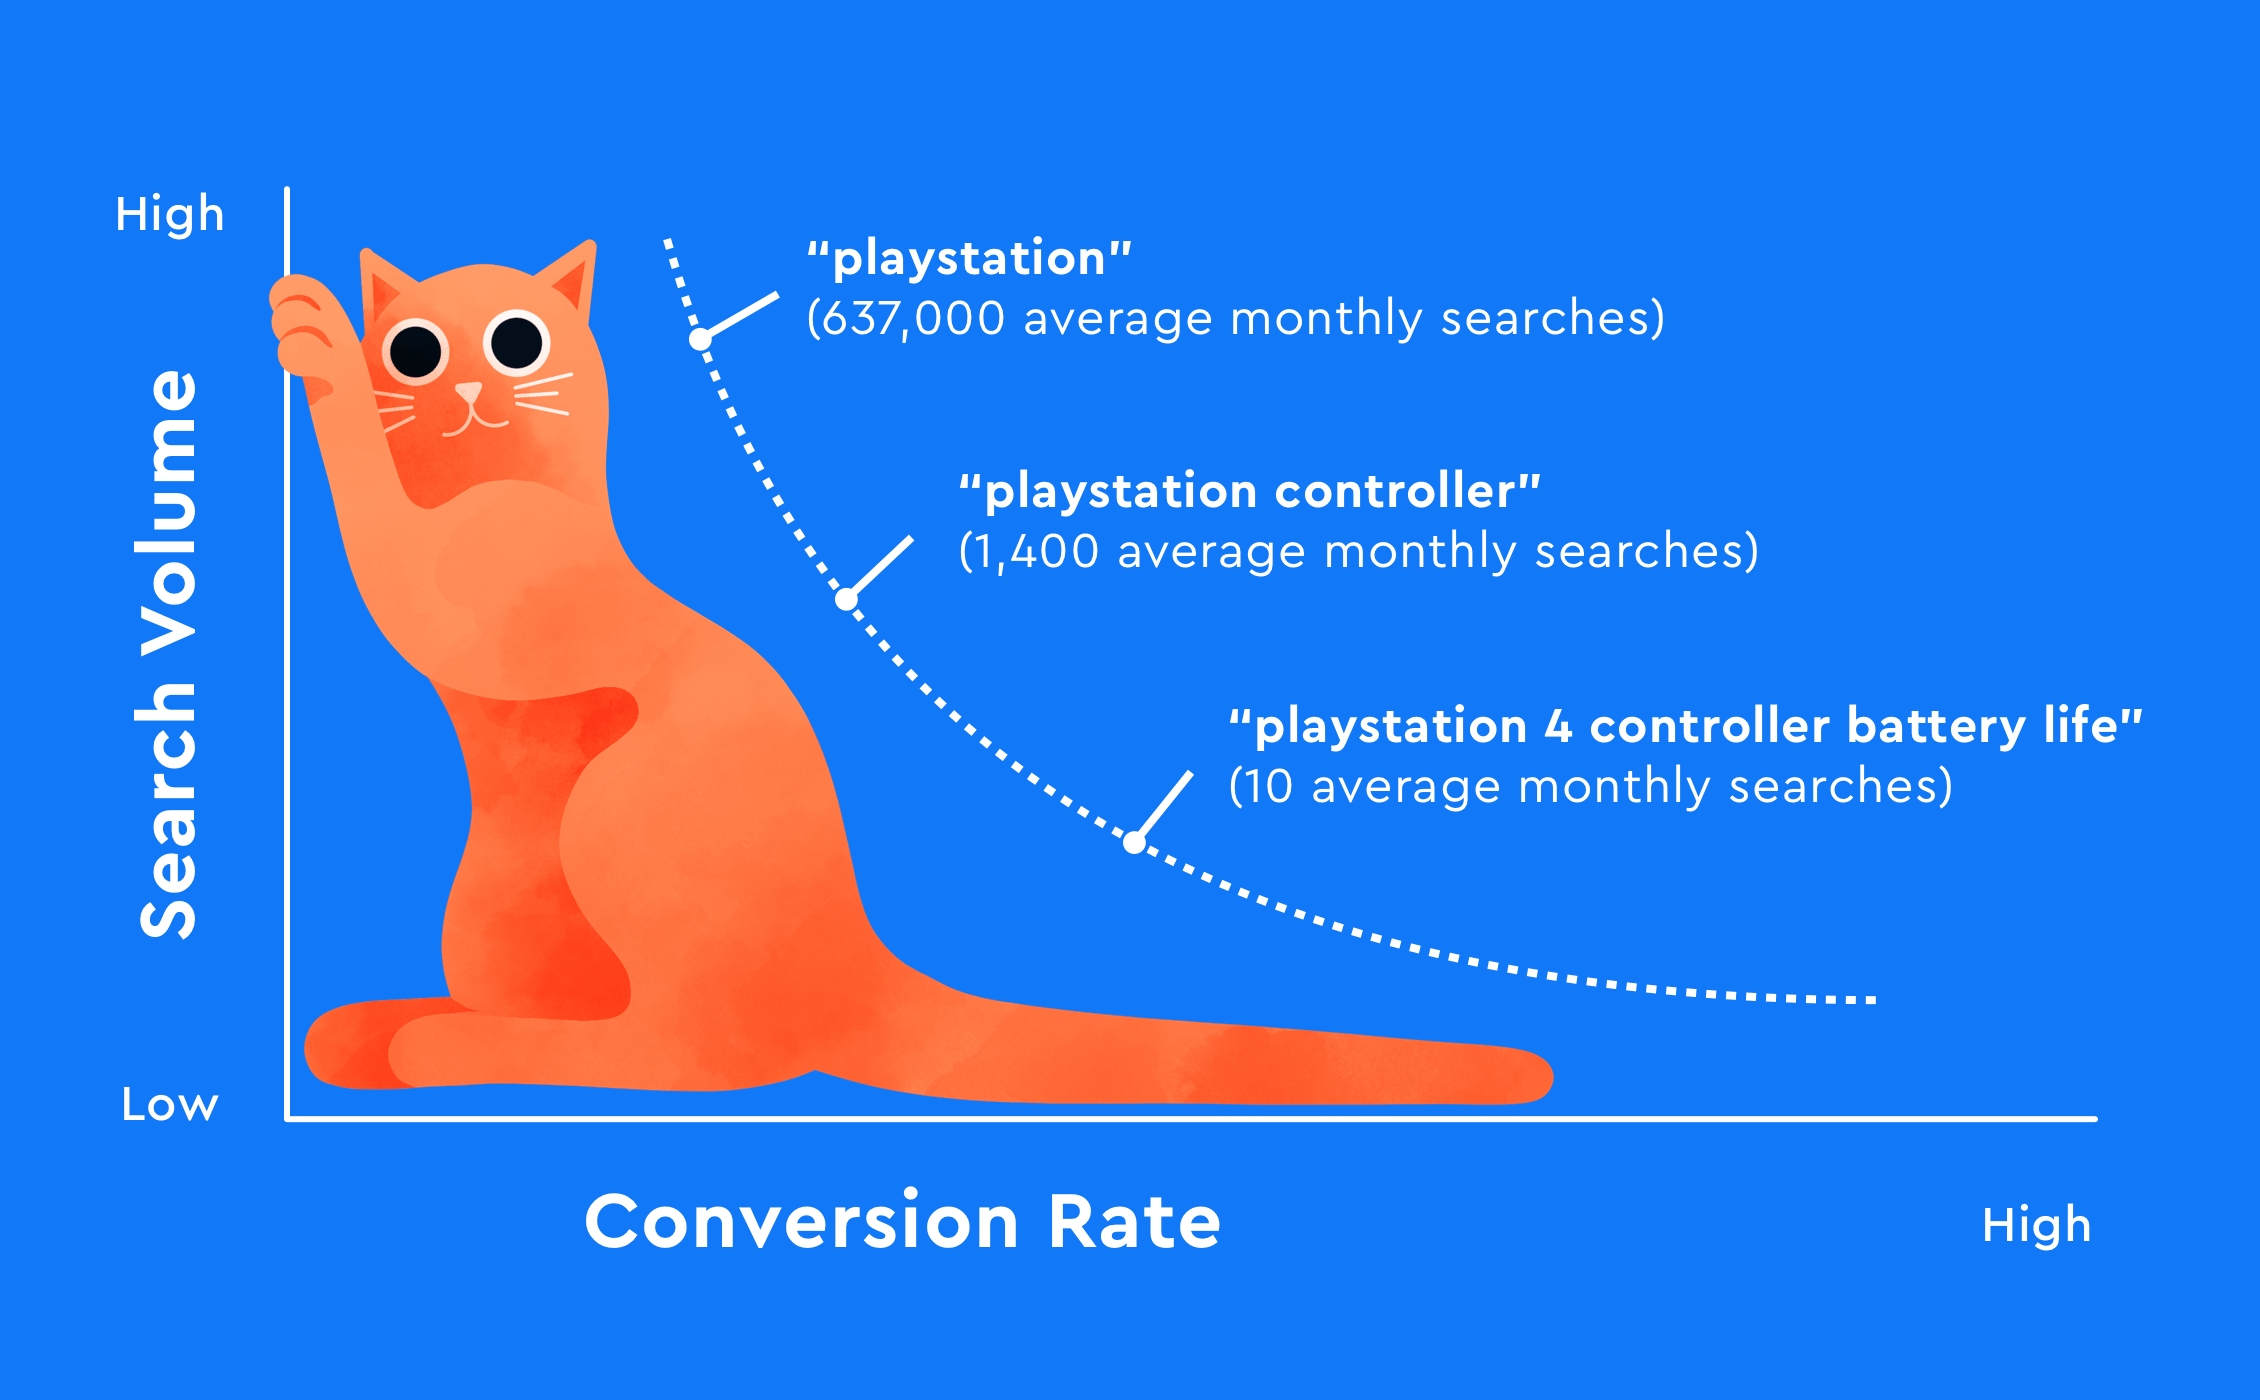 Correlation of keyword search volume and conversion rate